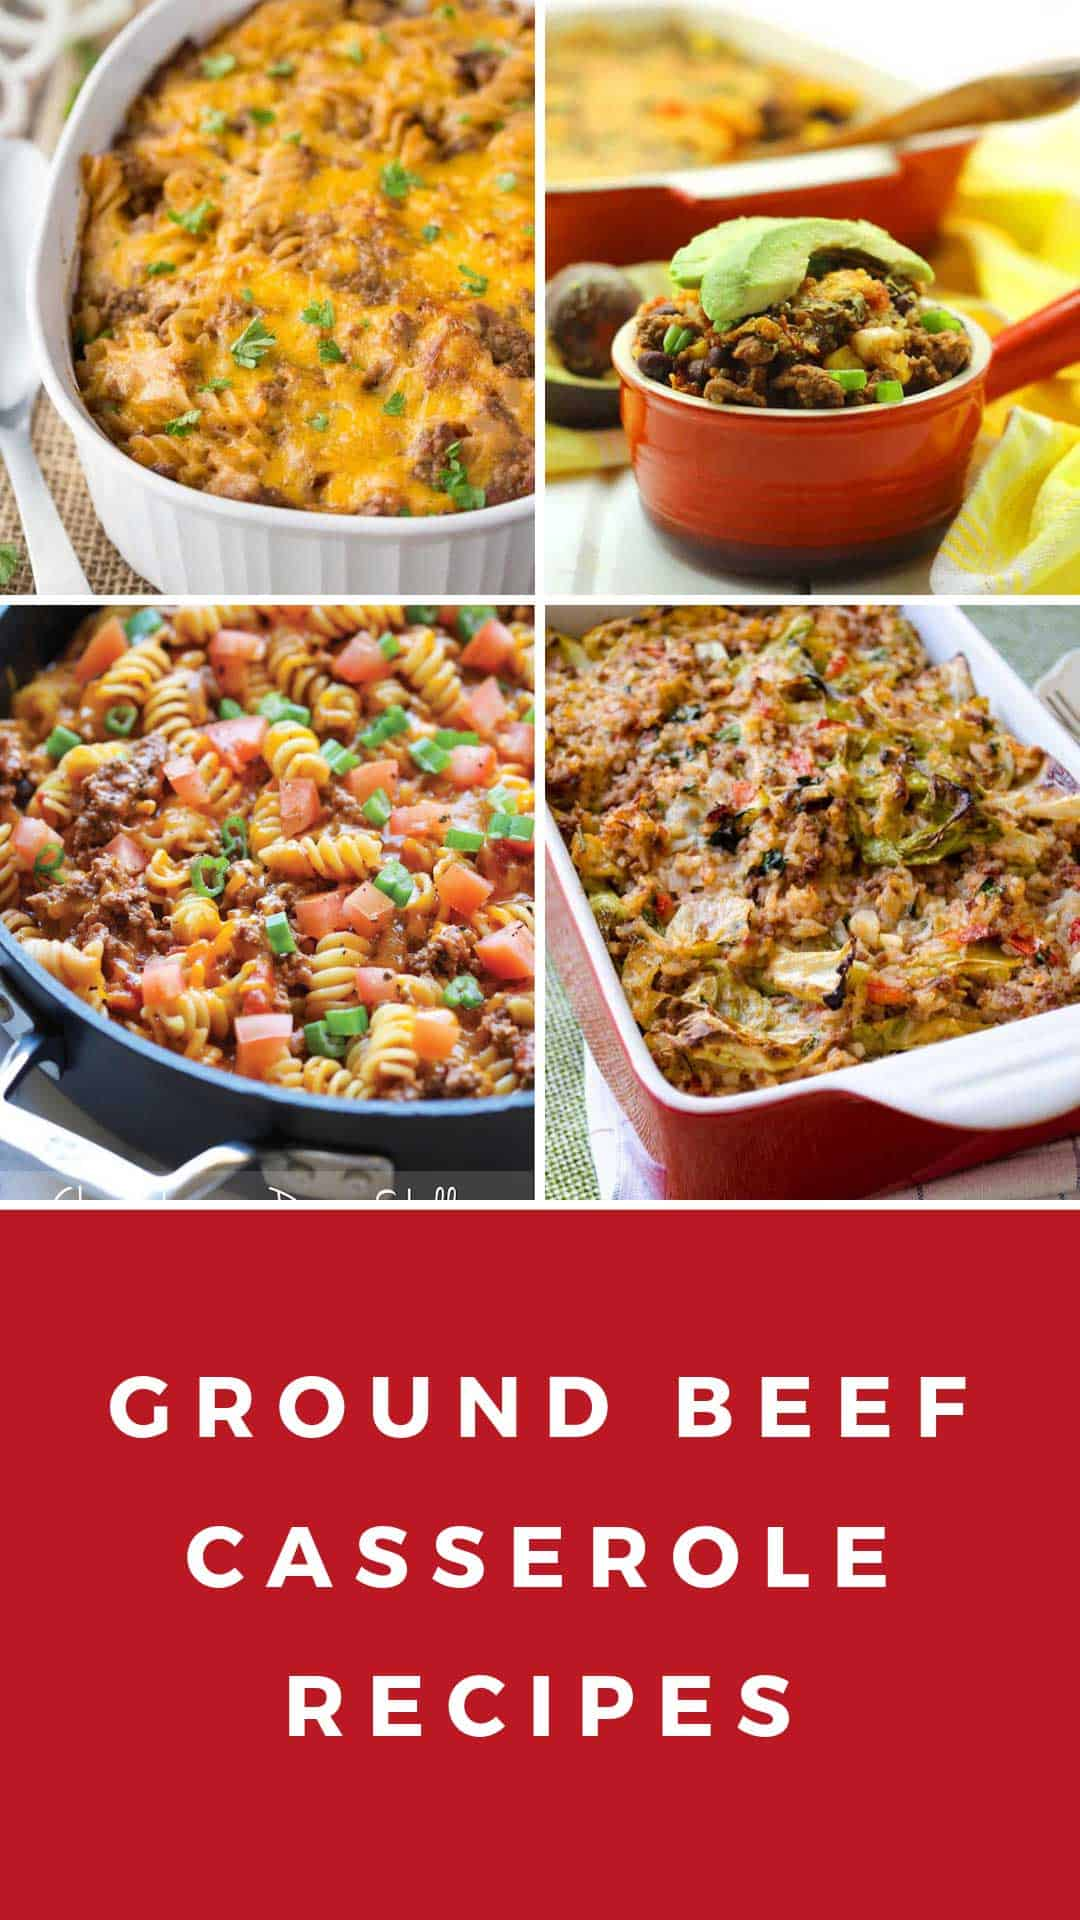 Yum! These ground beef casseroles are perfect for your weekly meal plan - kid approved too!